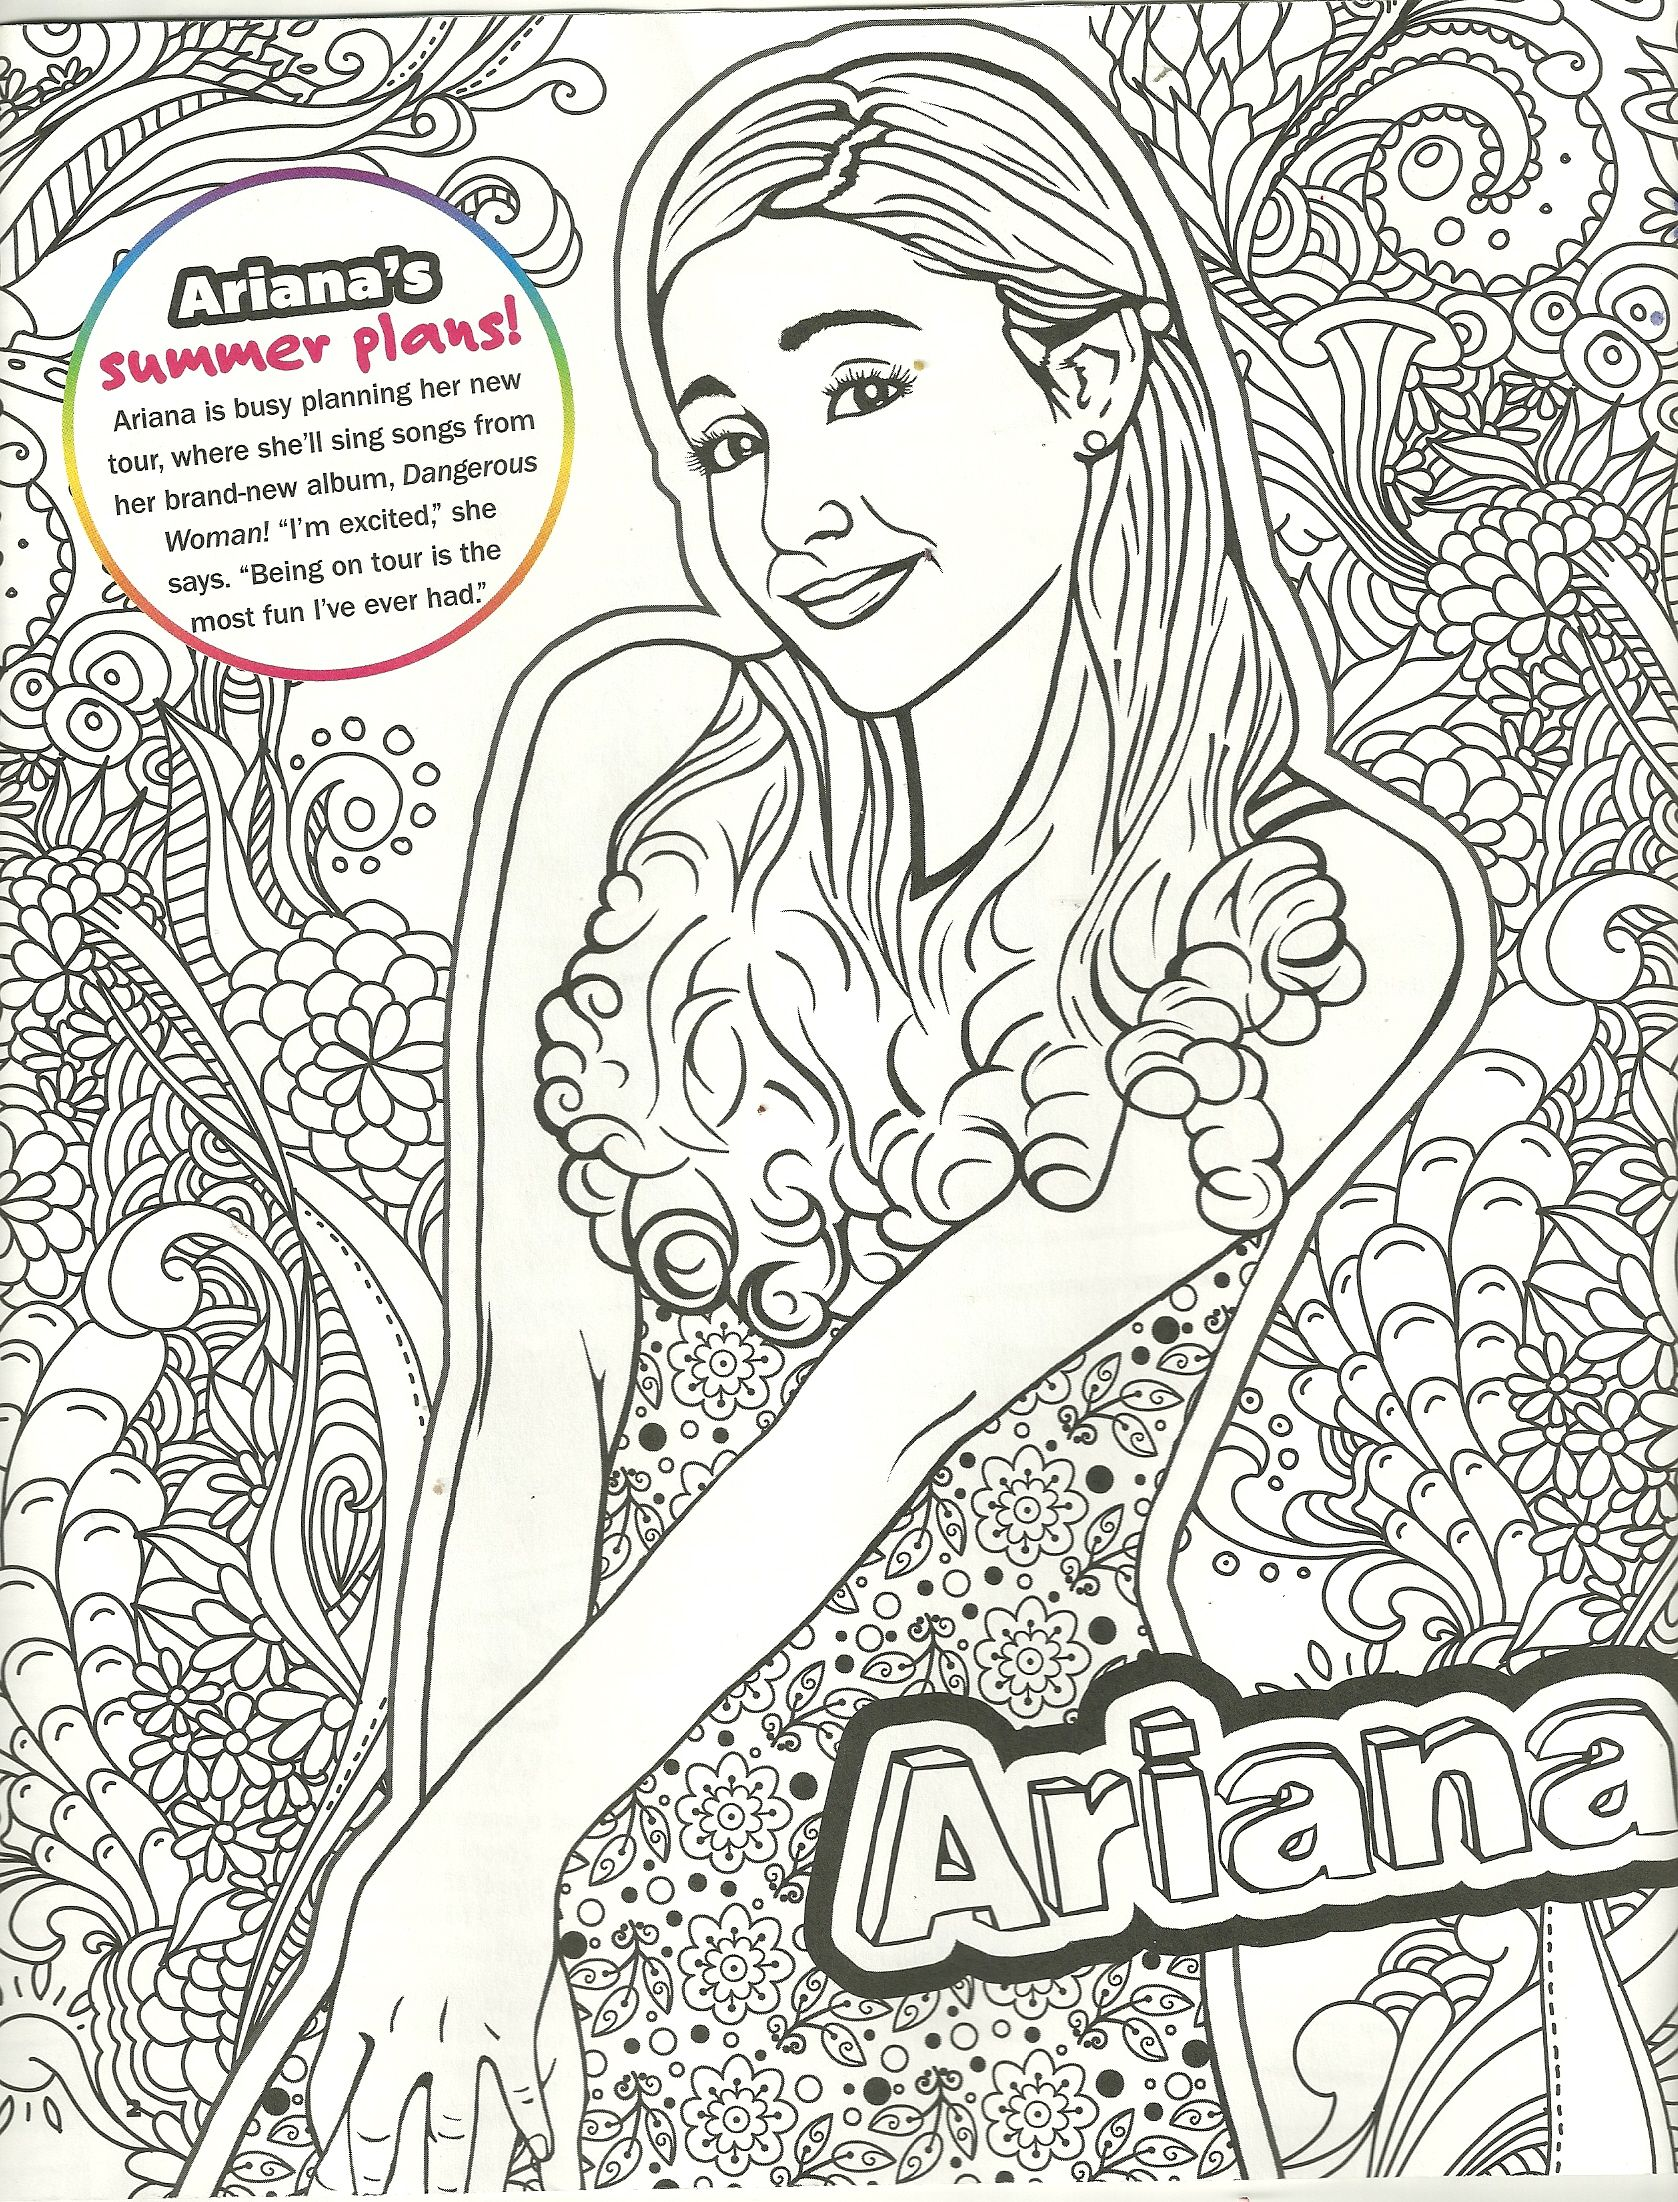 ariana grande coloring page my coloring pages Pinterest